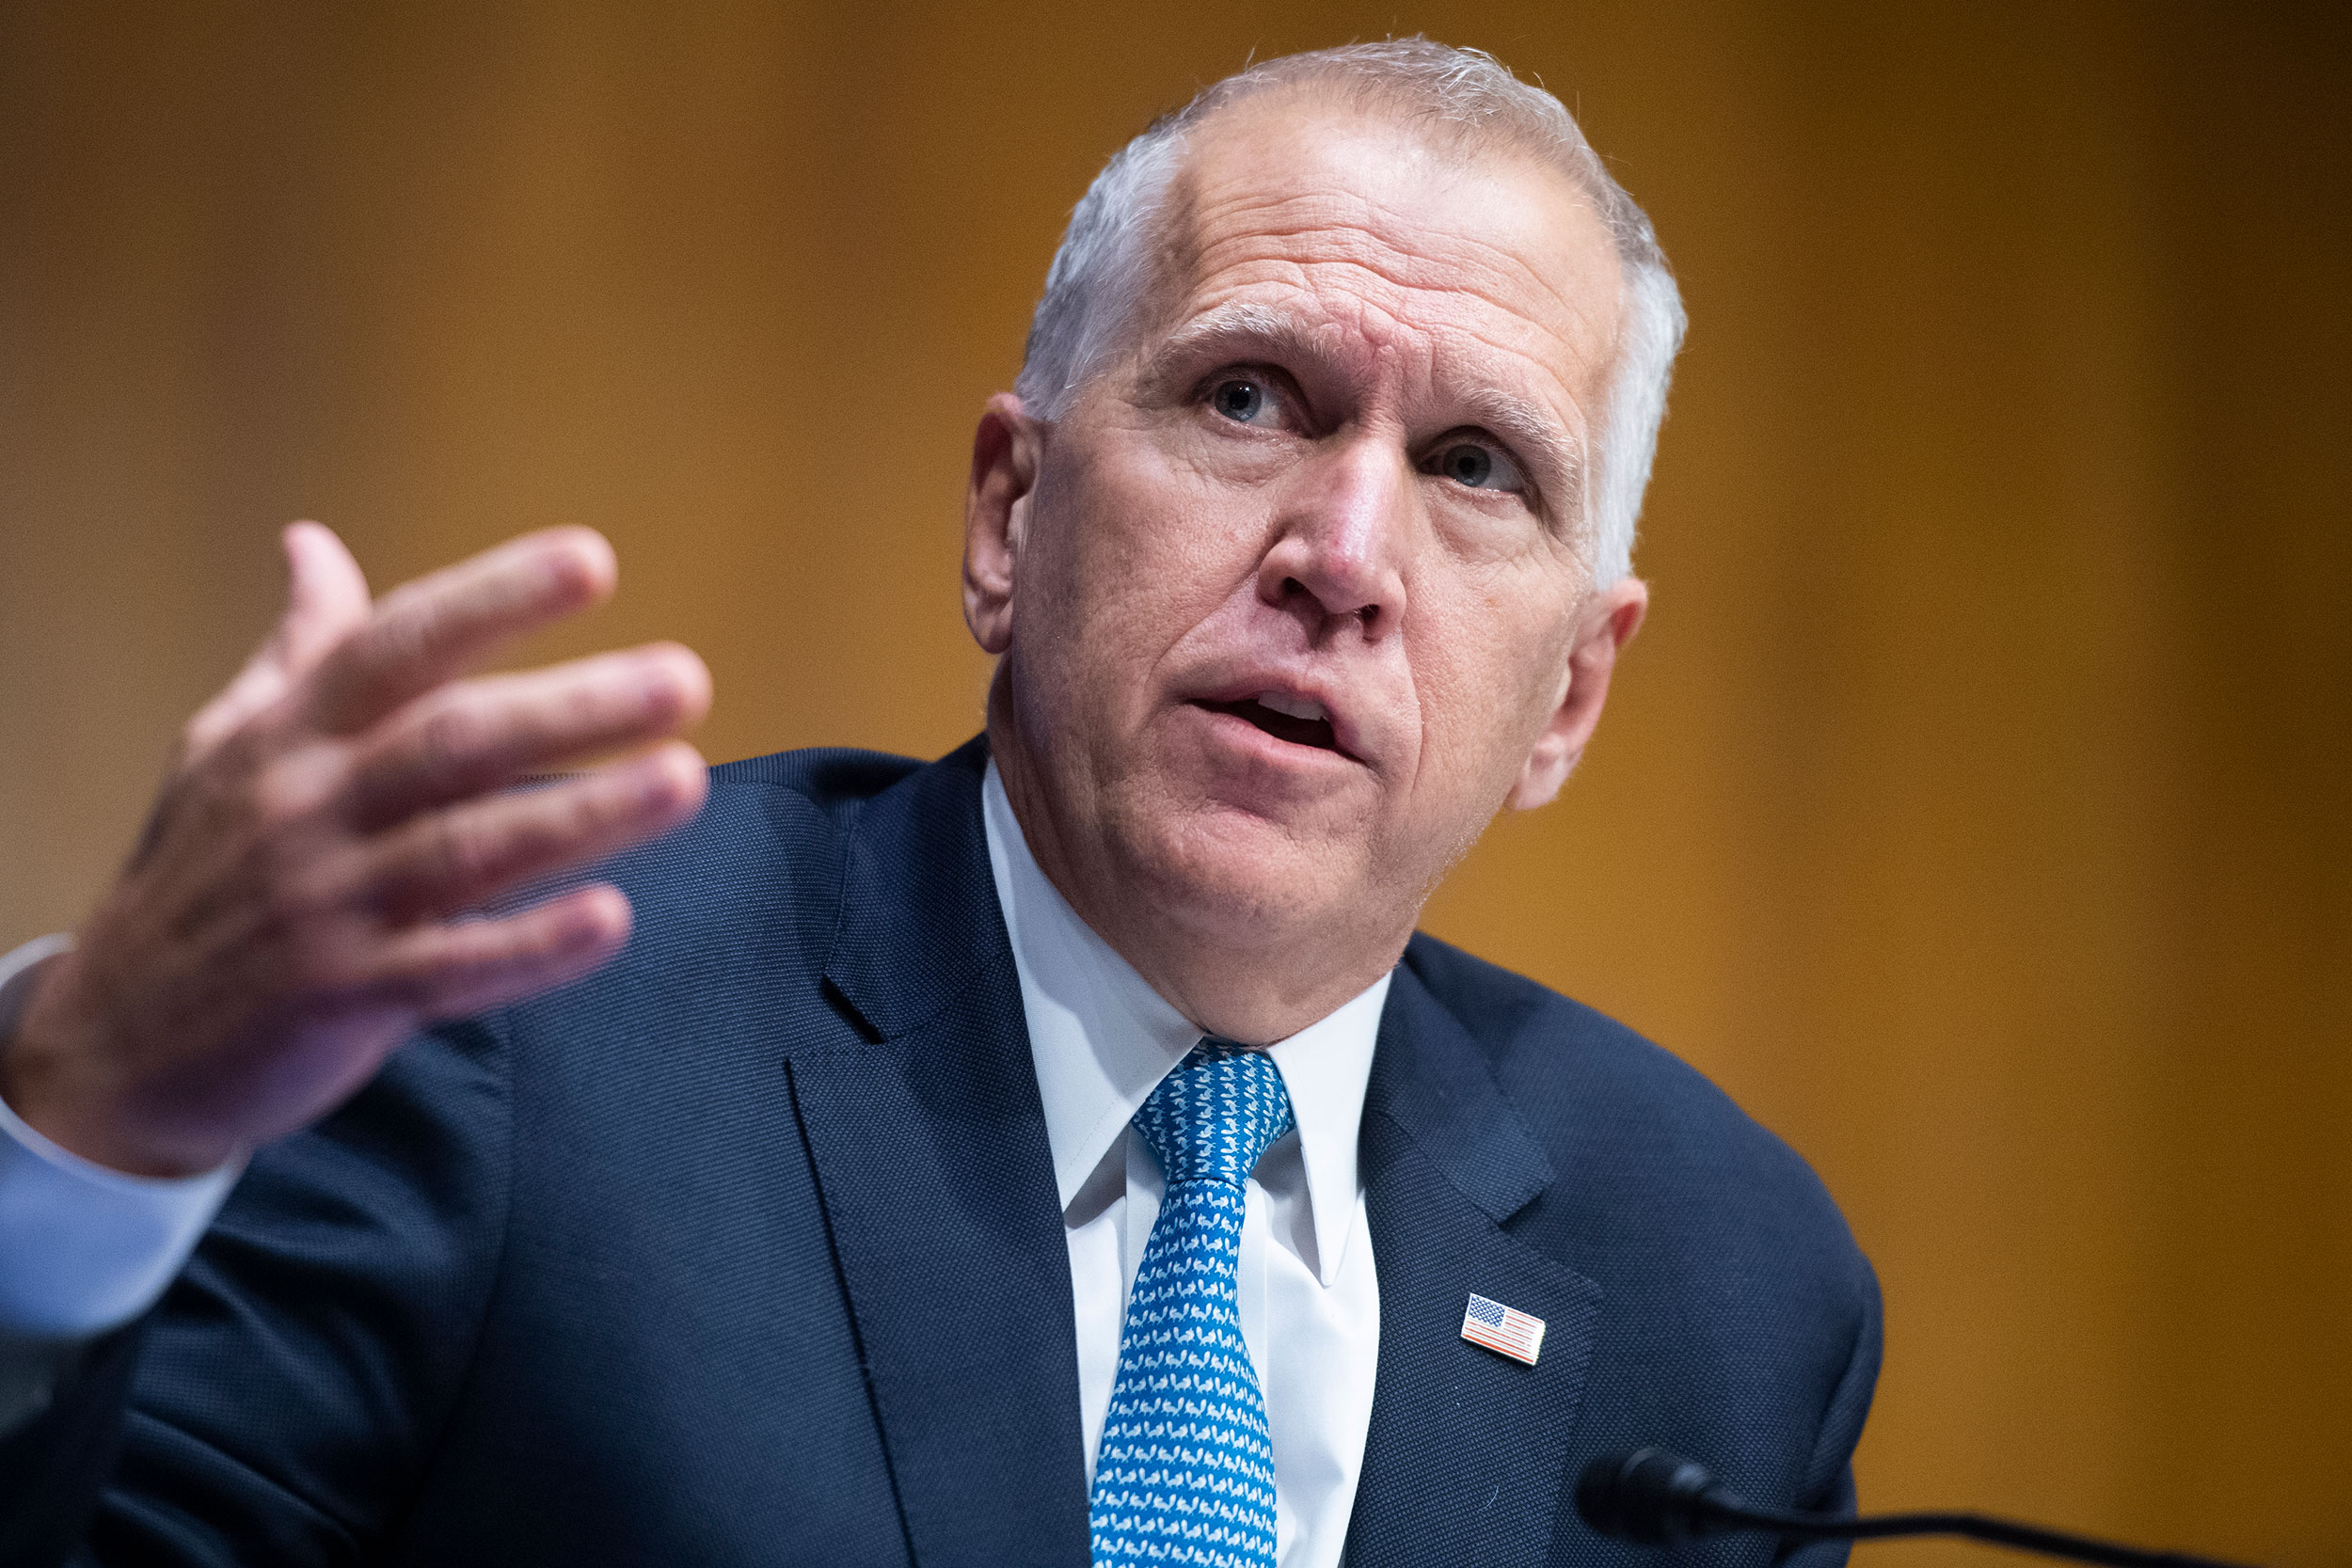 Sen. Thom Tillis asks a question during a Judiciary Committee hearing on June 16 in Washington, DC.